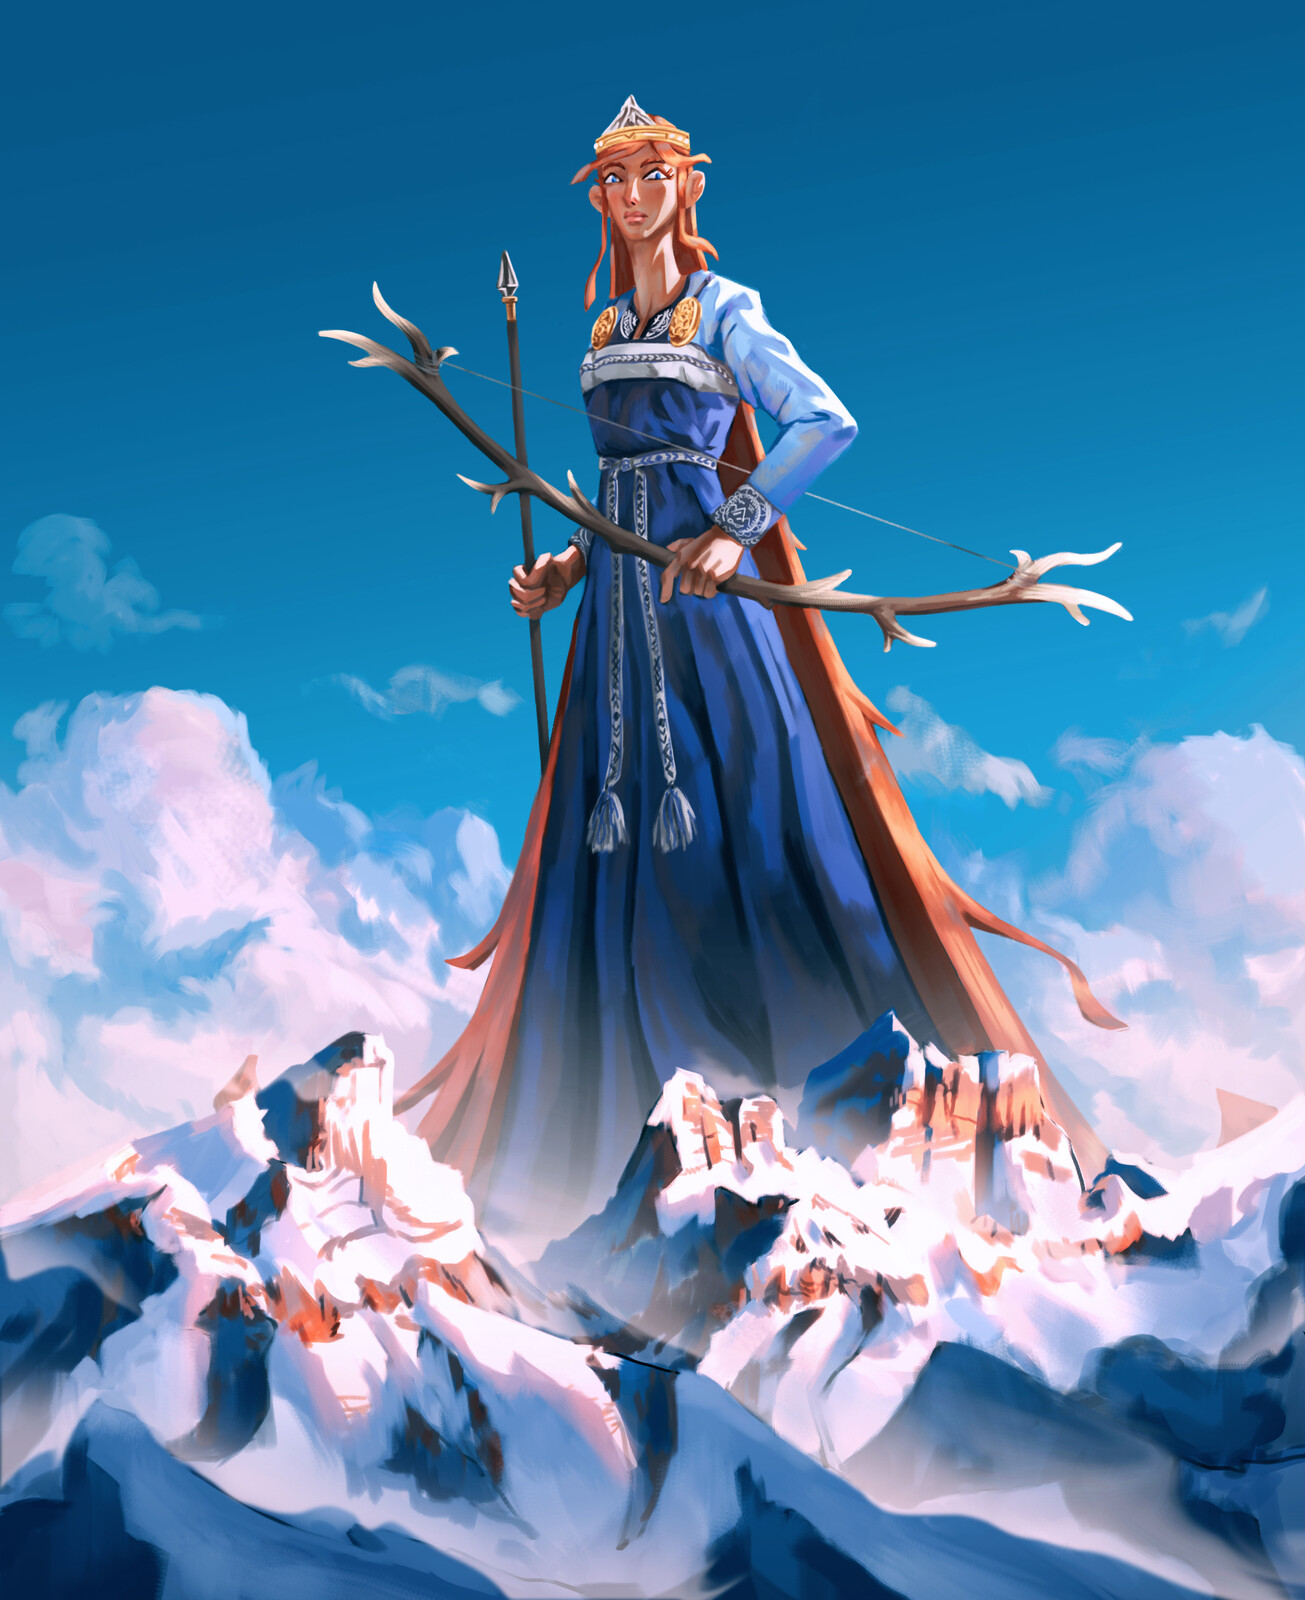 Skadi - Norse Goddess of Winter, hunting and skiing